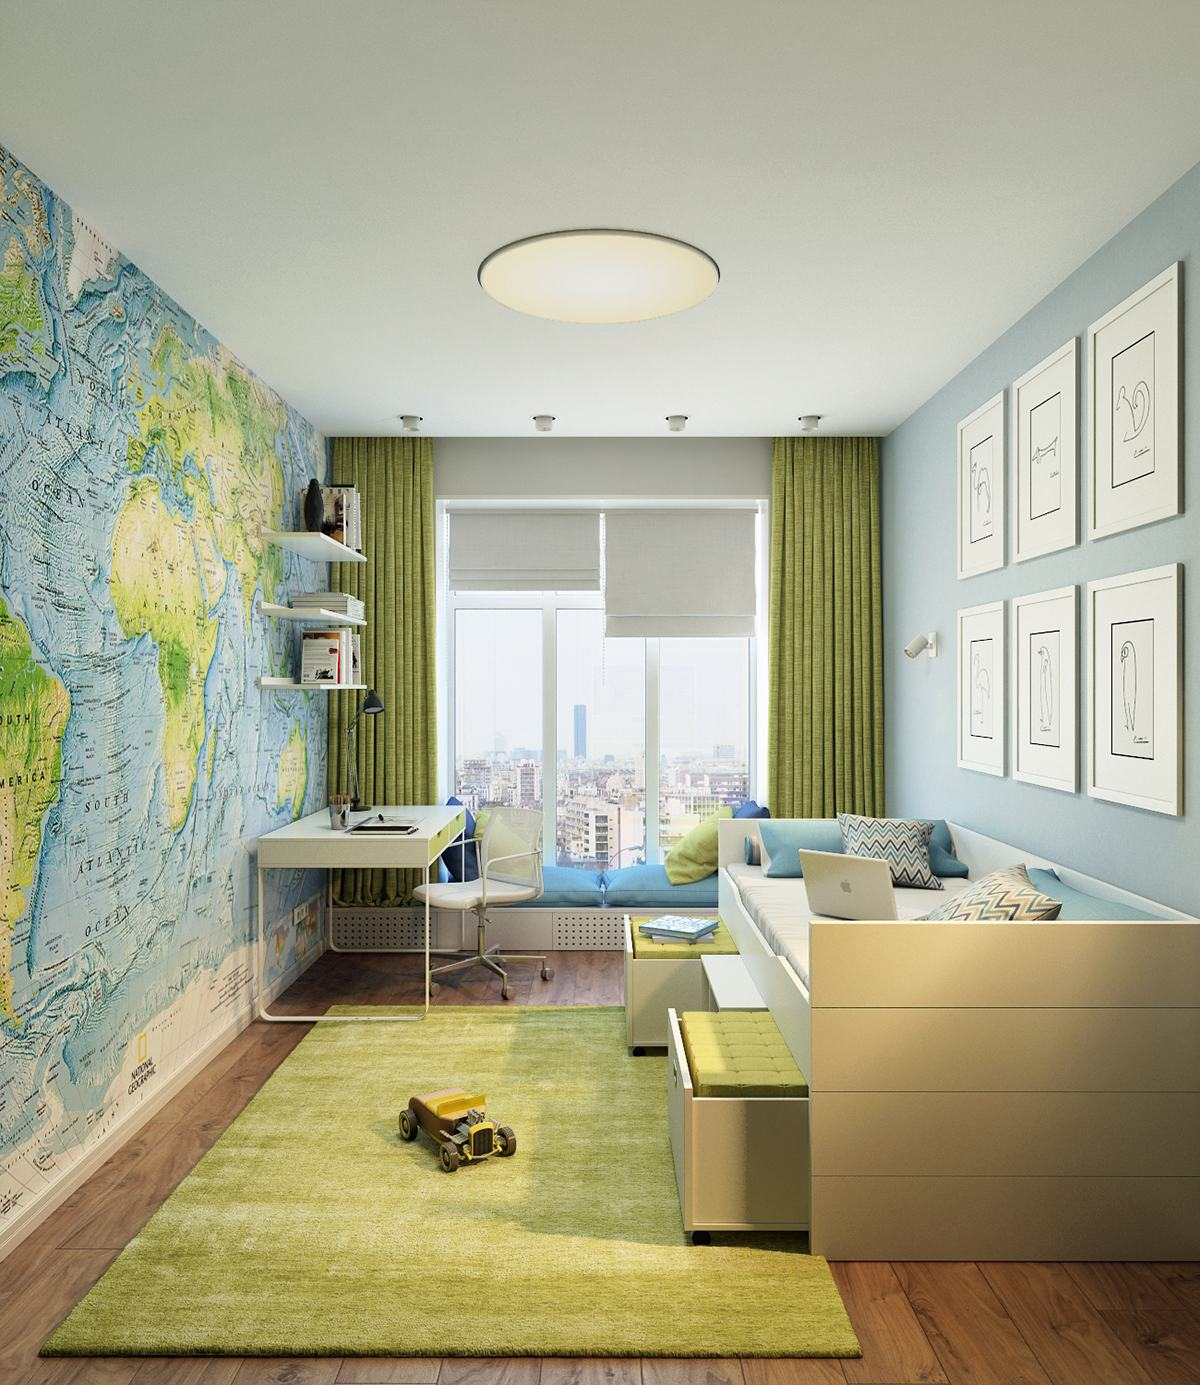 Full map wall Funniest Kid Room Wall Decor Ideas To Create Big Creative Fresh Canvases